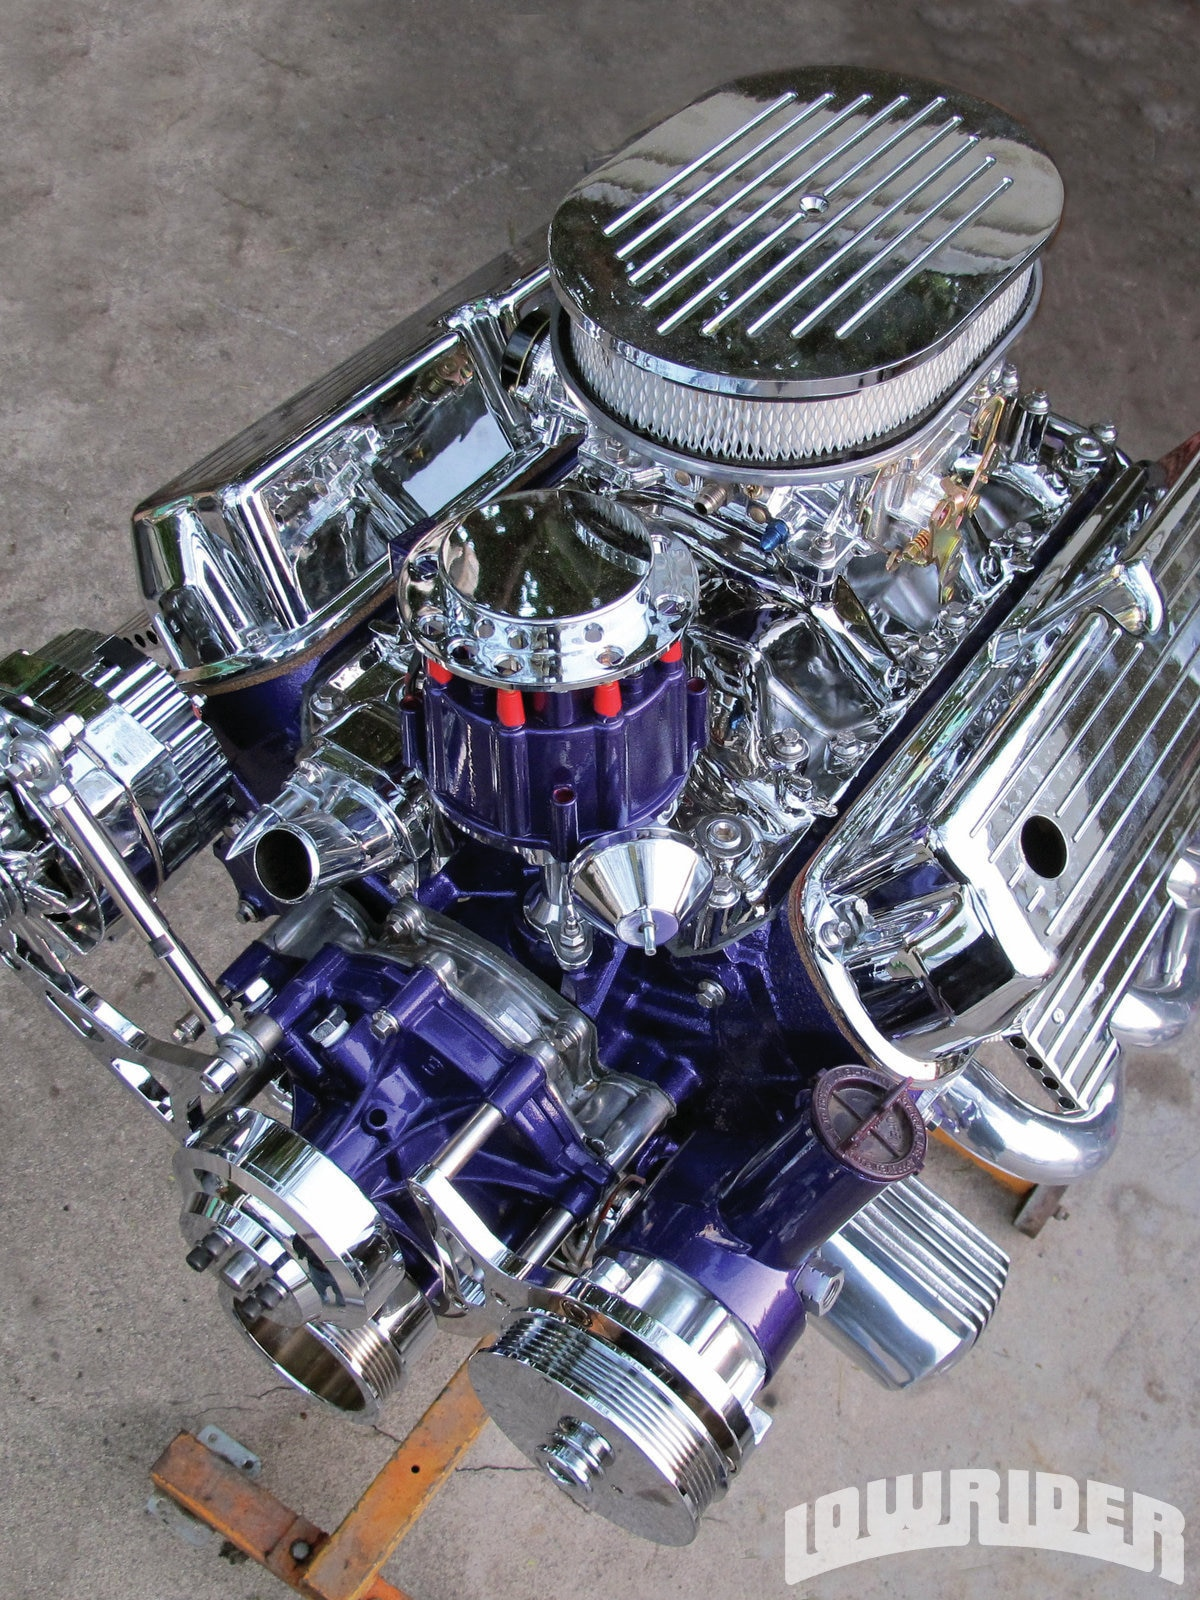 Ford Mustang Engine >> Ford 351 Windsor - Small-Block Build Up - Lowrider Magazine